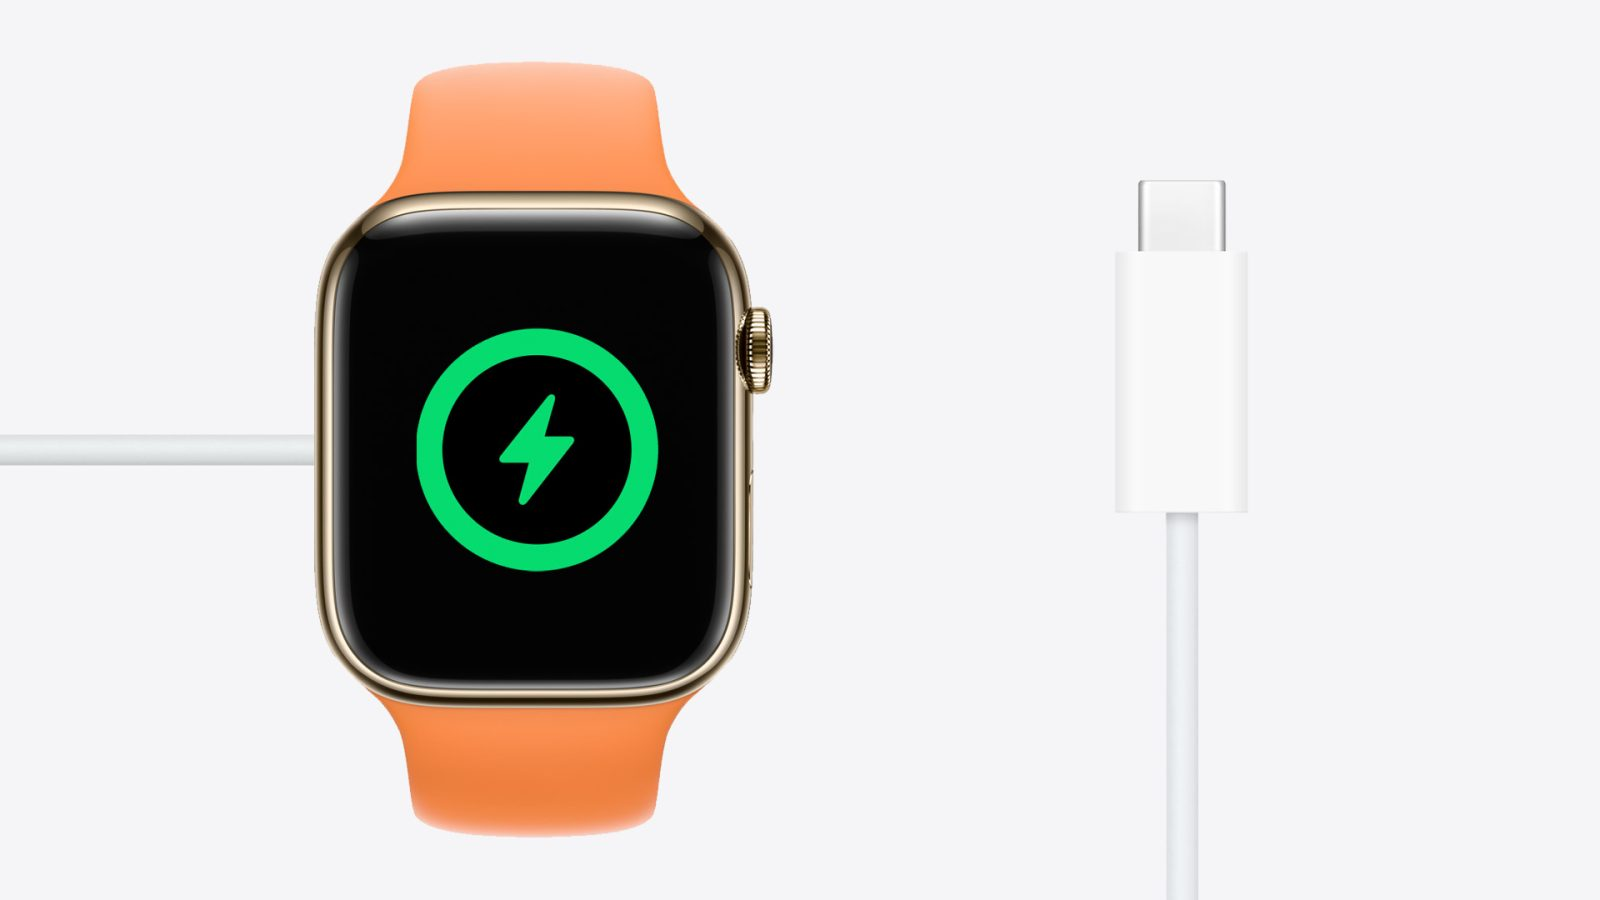 Apple Watch Series 7 and SE now come with USB-C cable; fast charging may not work with MagSafe Duo